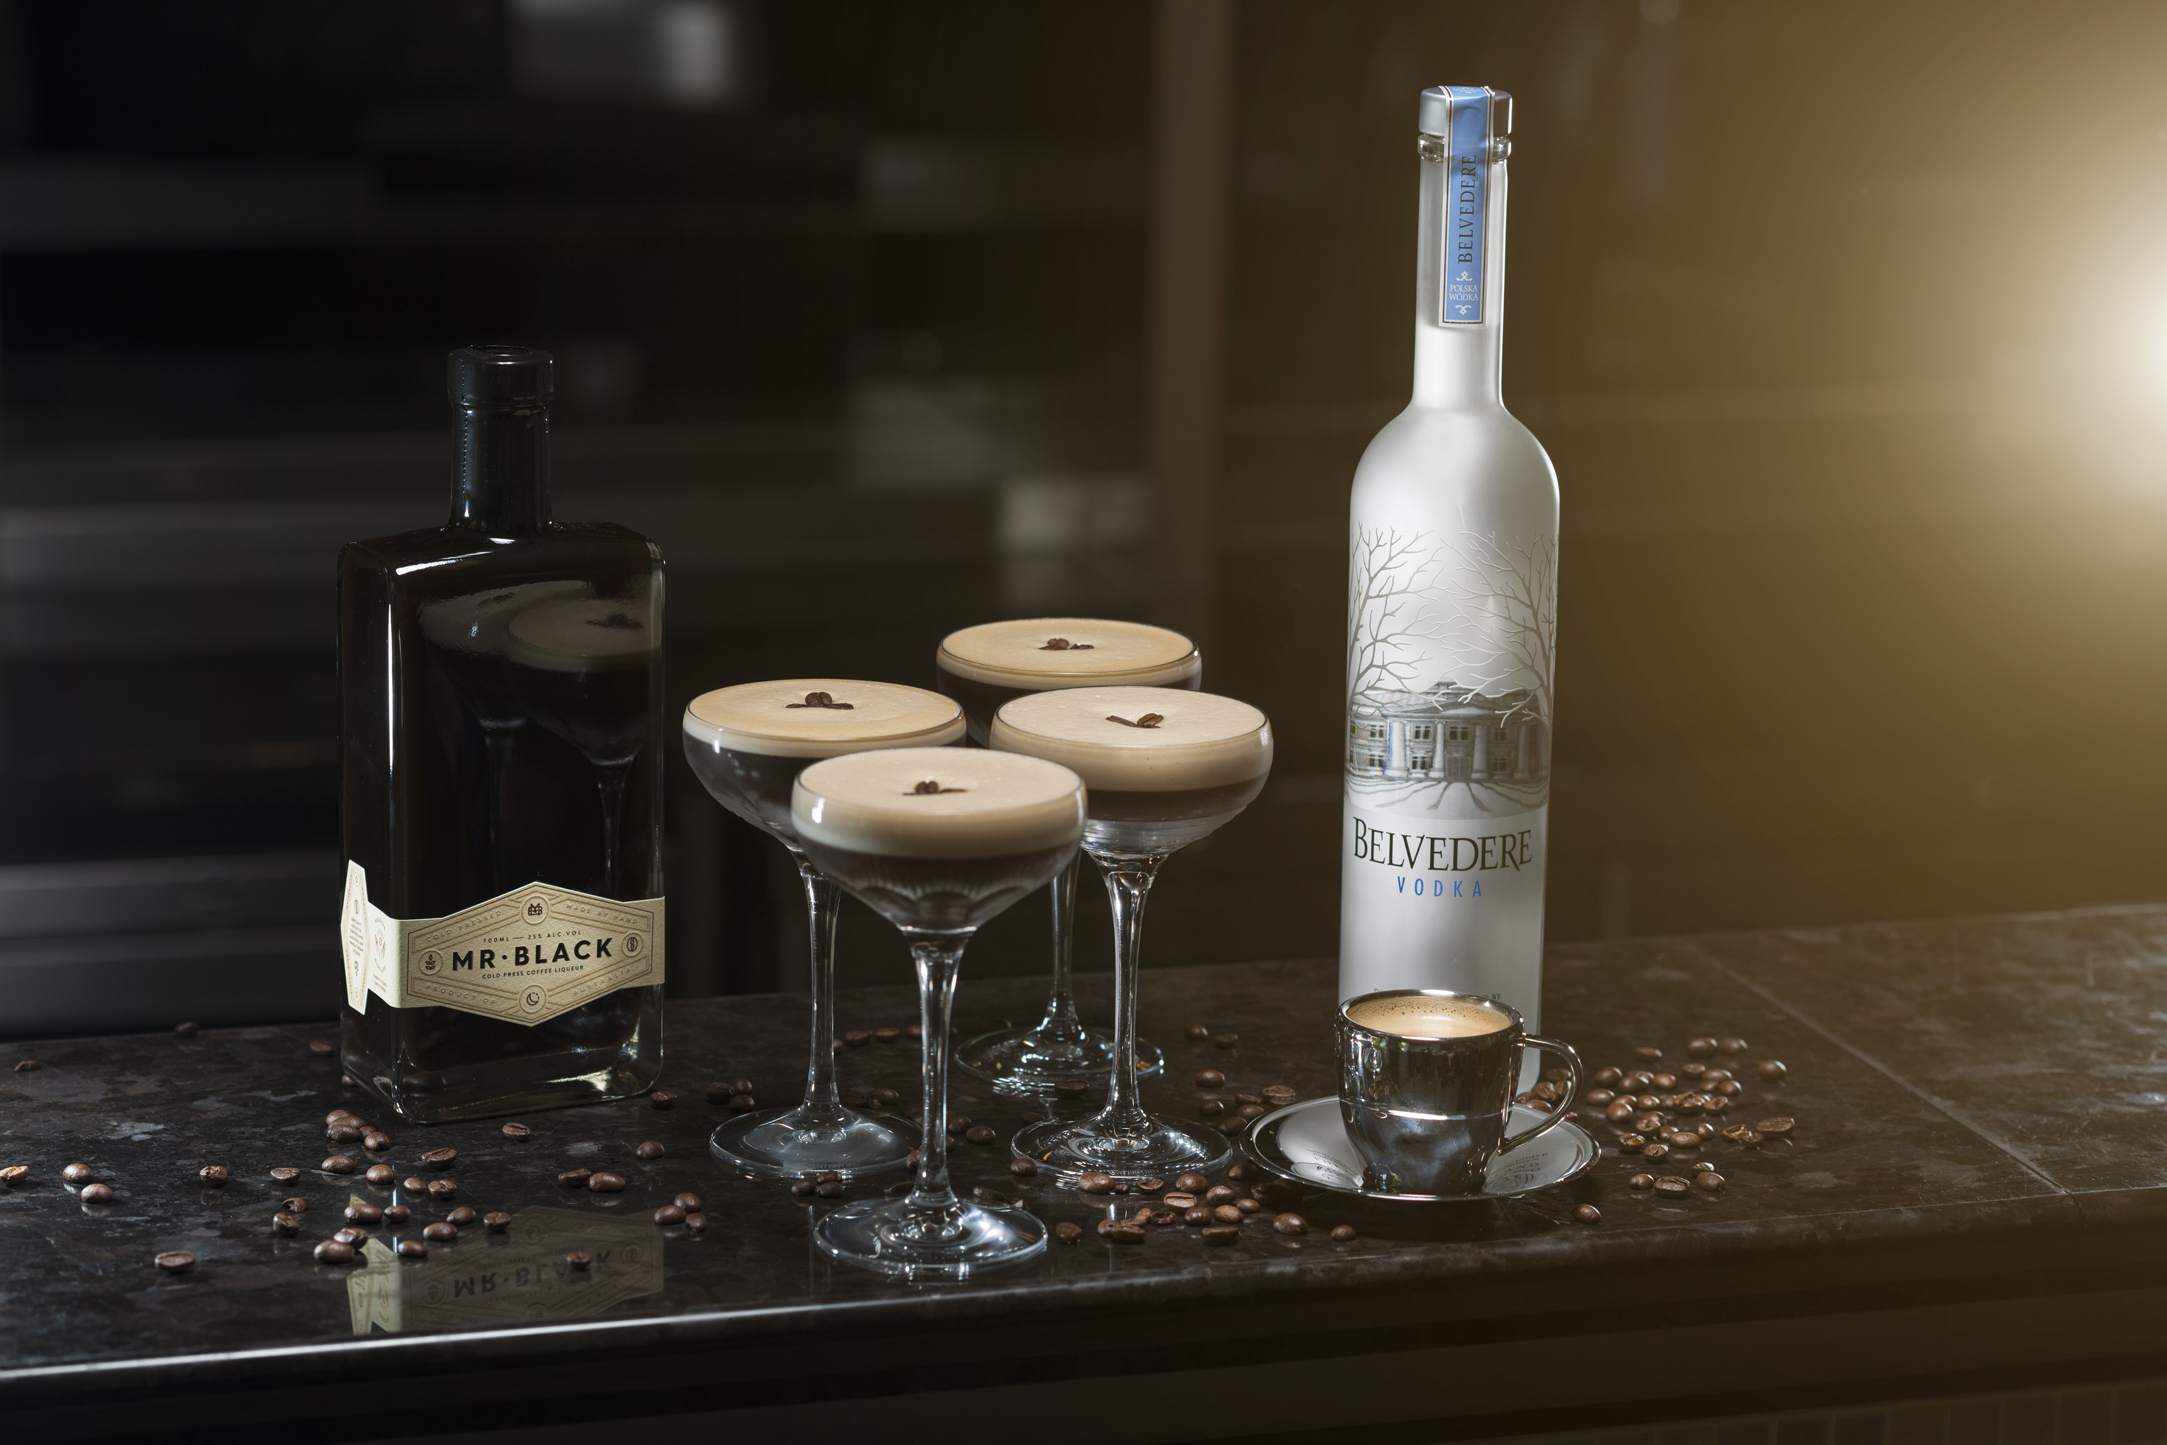 Belvedere vodka and espresso martinis